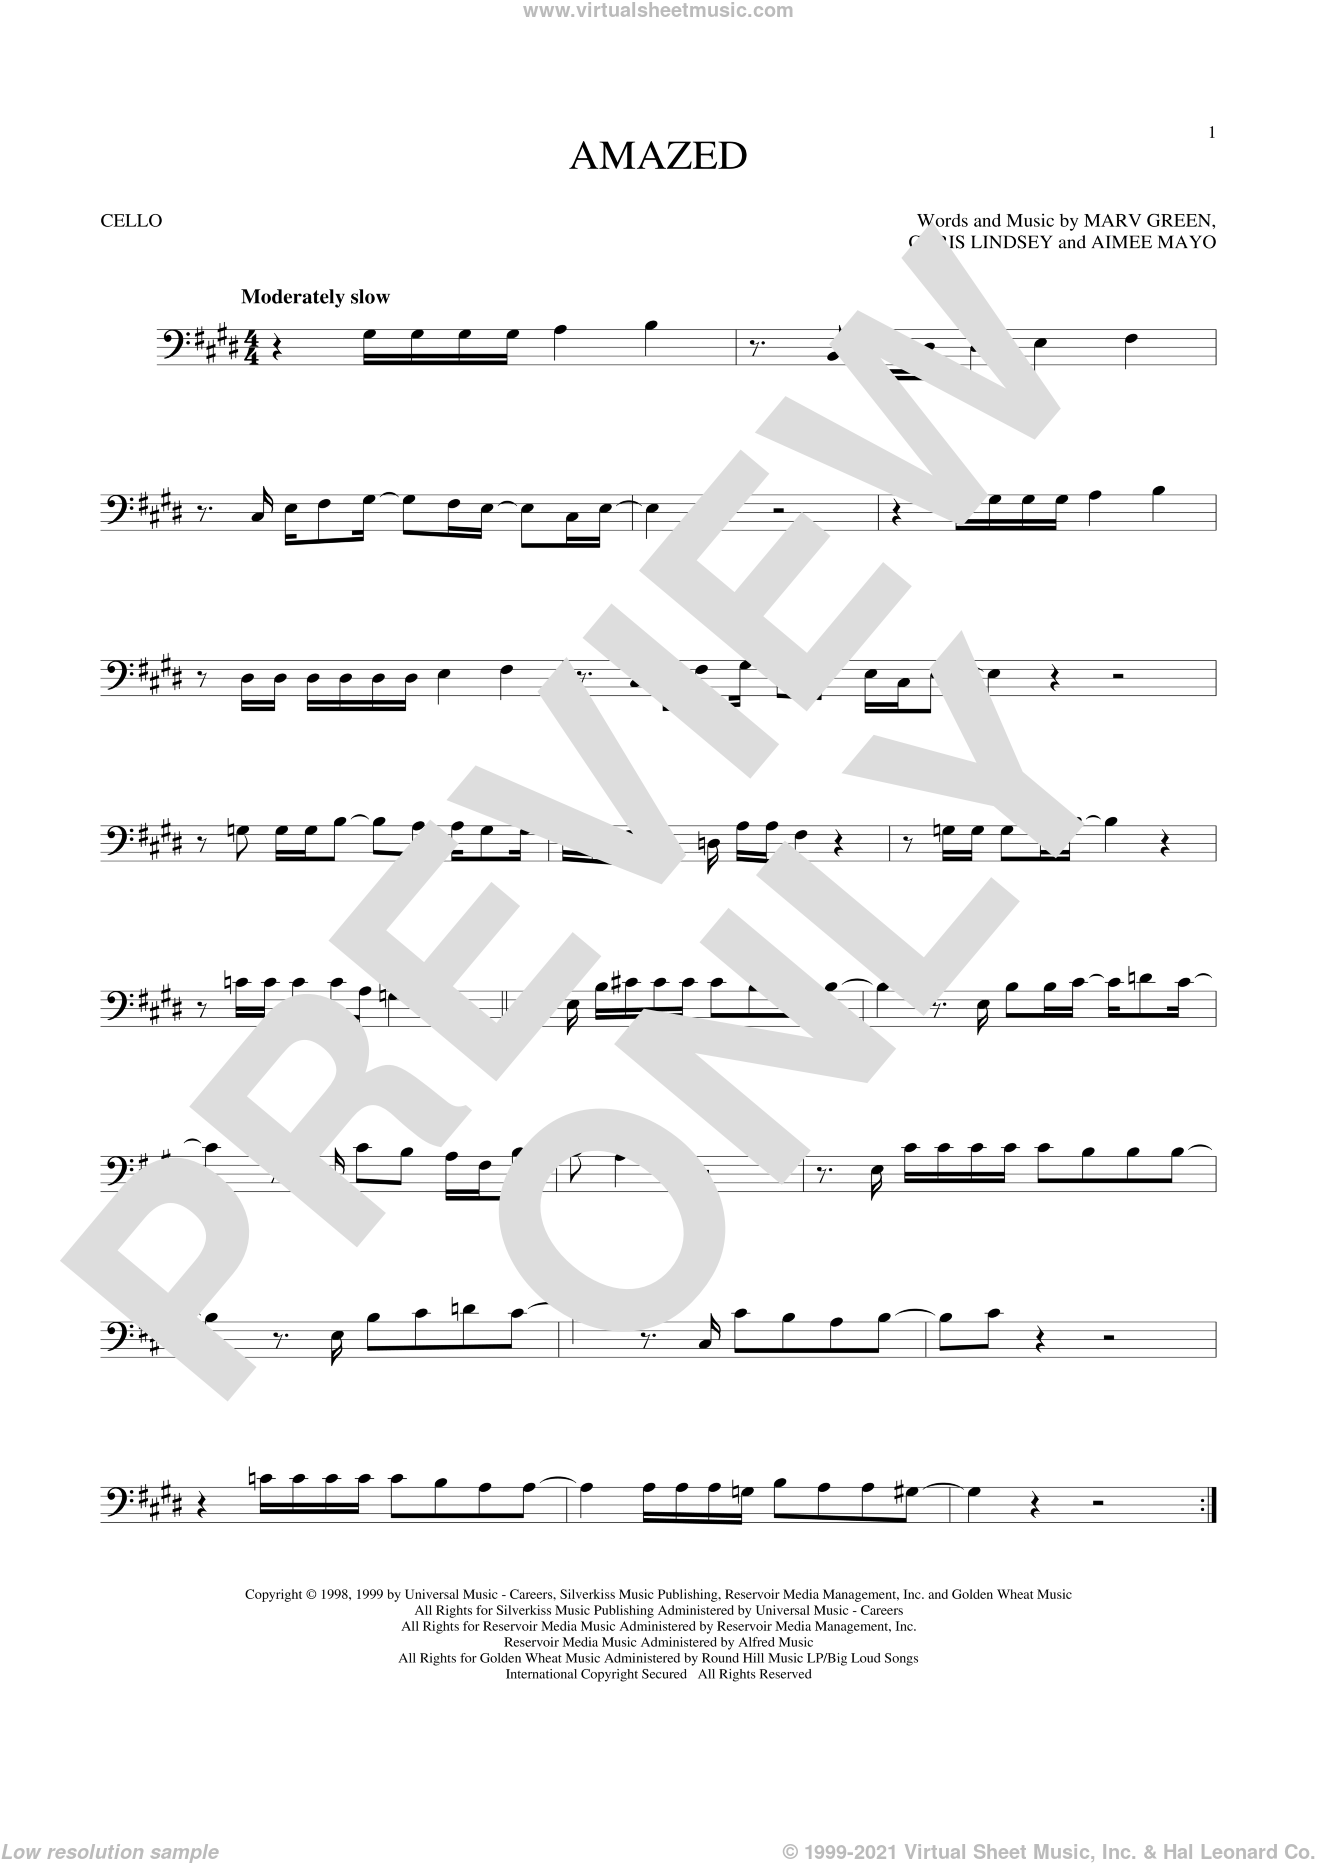 Amazed sheet music for cello solo by Lonestar, Aimee Mayo, Chris Lindsey and Marv Green, wedding score, intermediate skill level